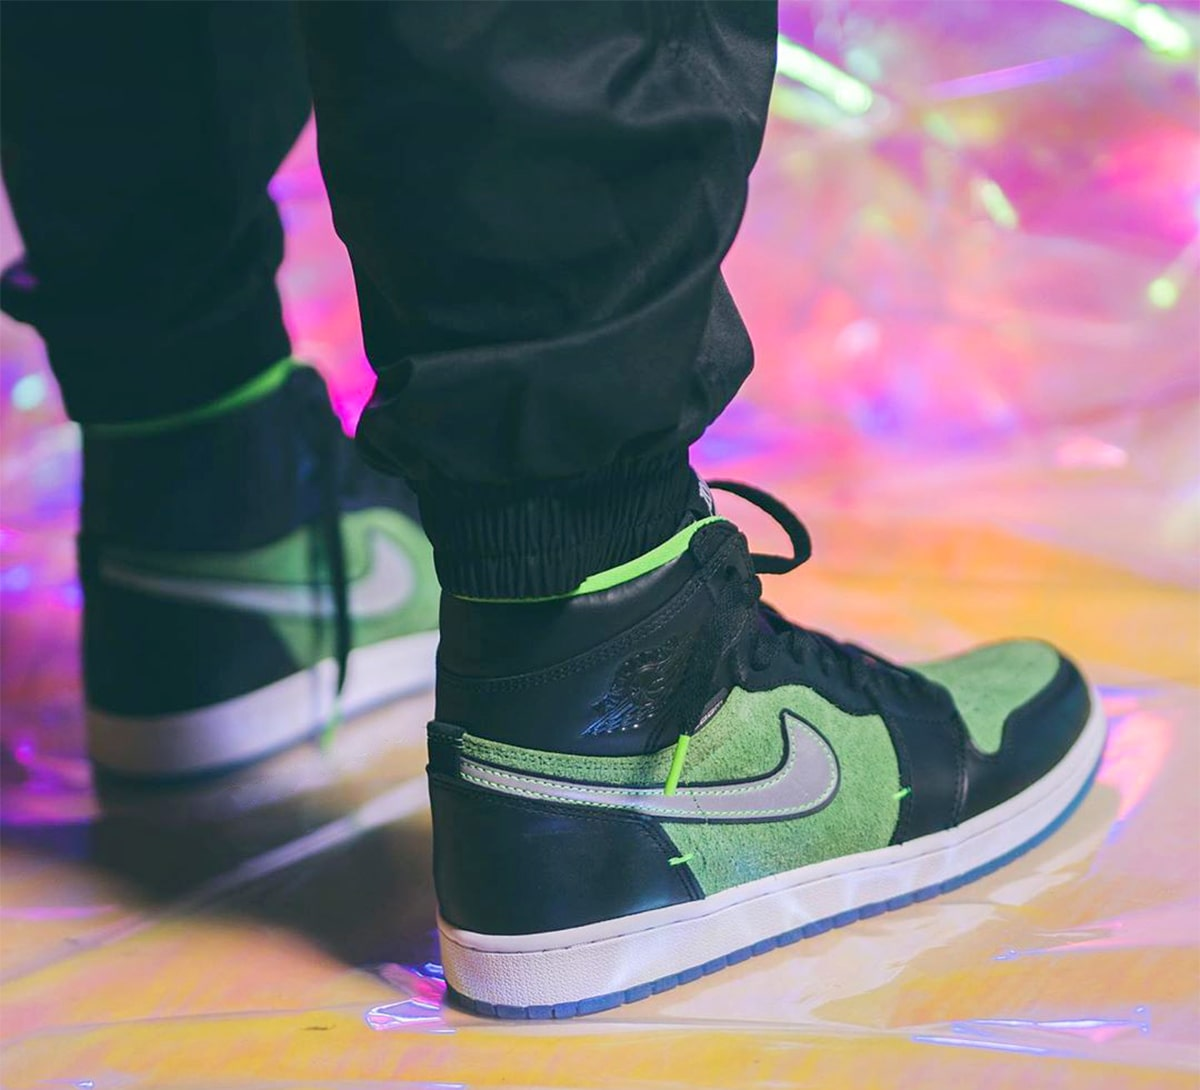 Where To Buy The Air Jordan 1 High Zoom Brut House Of Heat